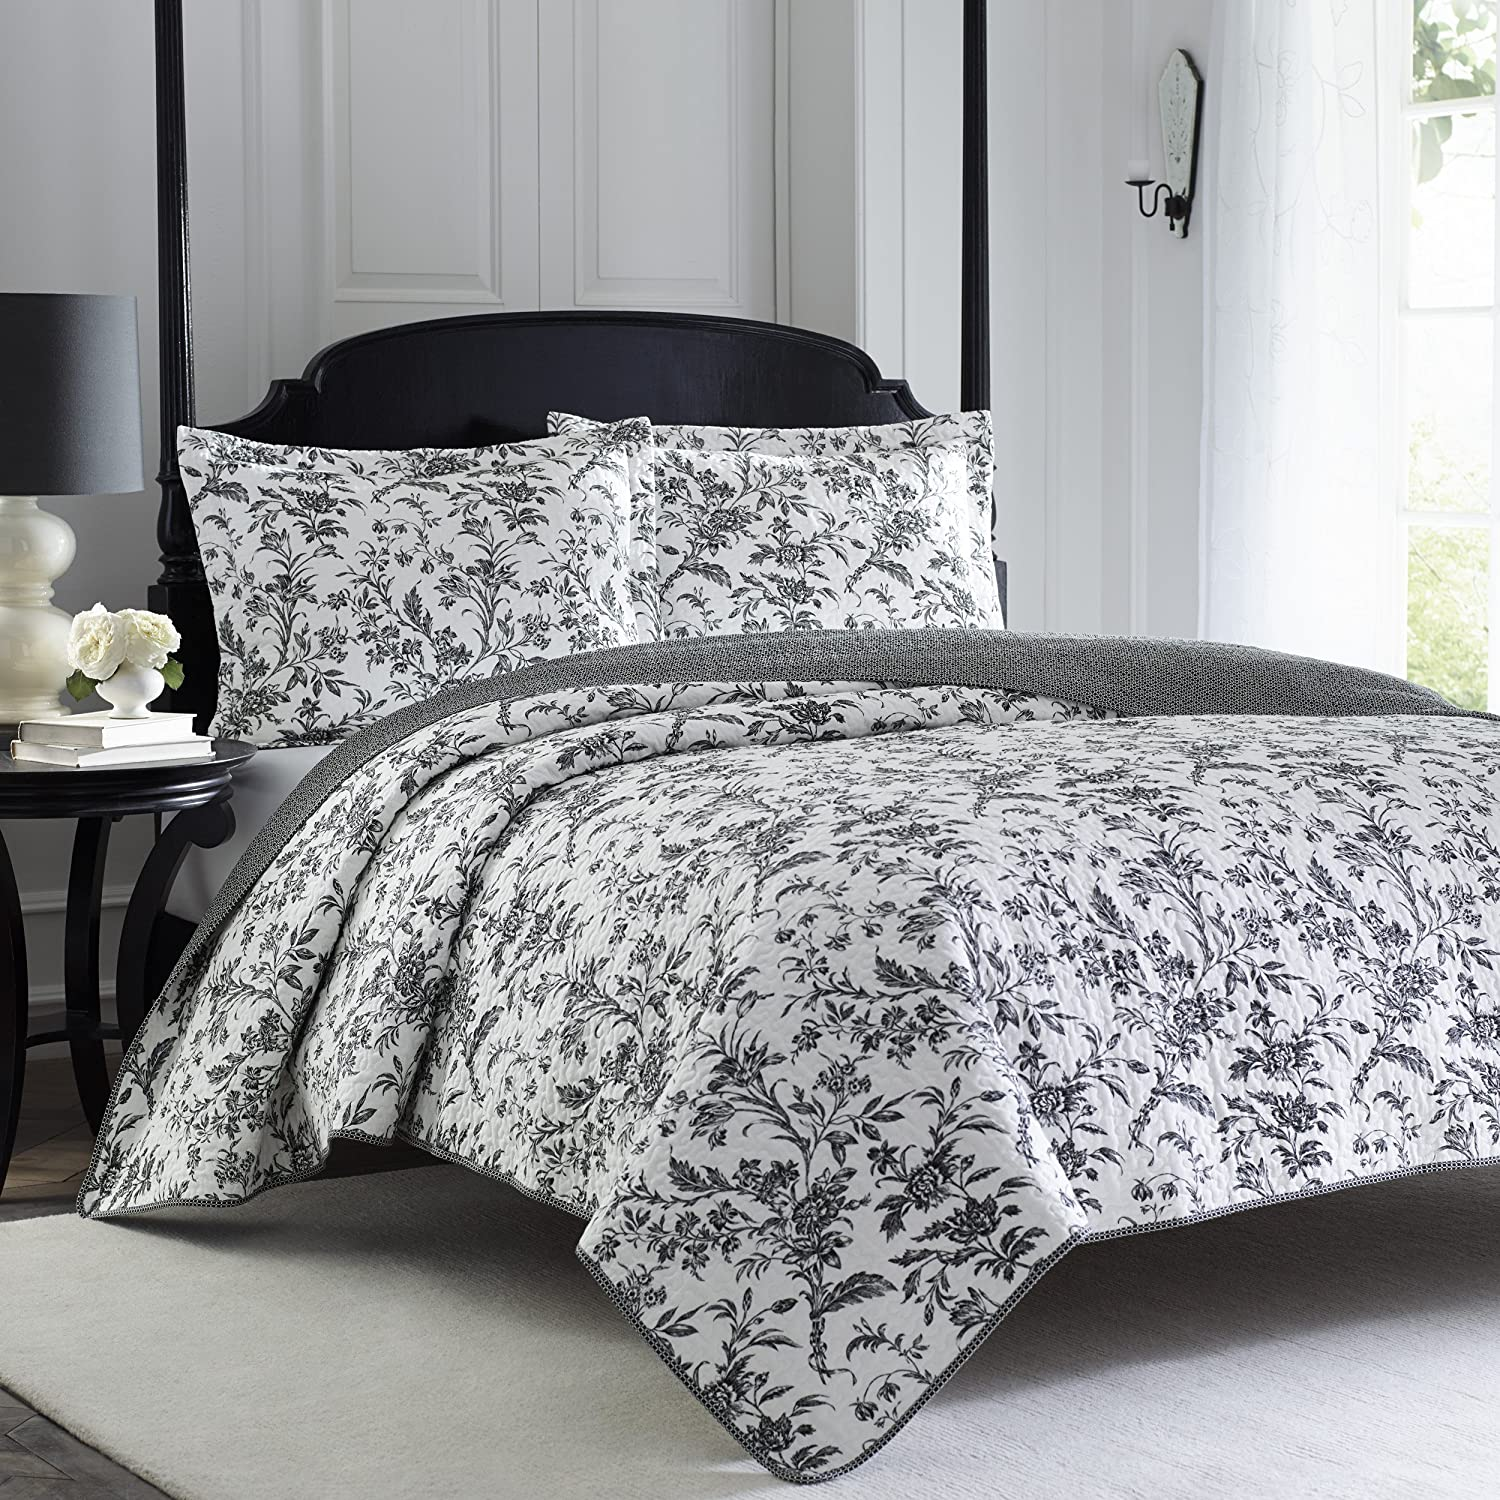 Laura Ashley Amberley Quilt Set, Twin A1Db-ipmBkL